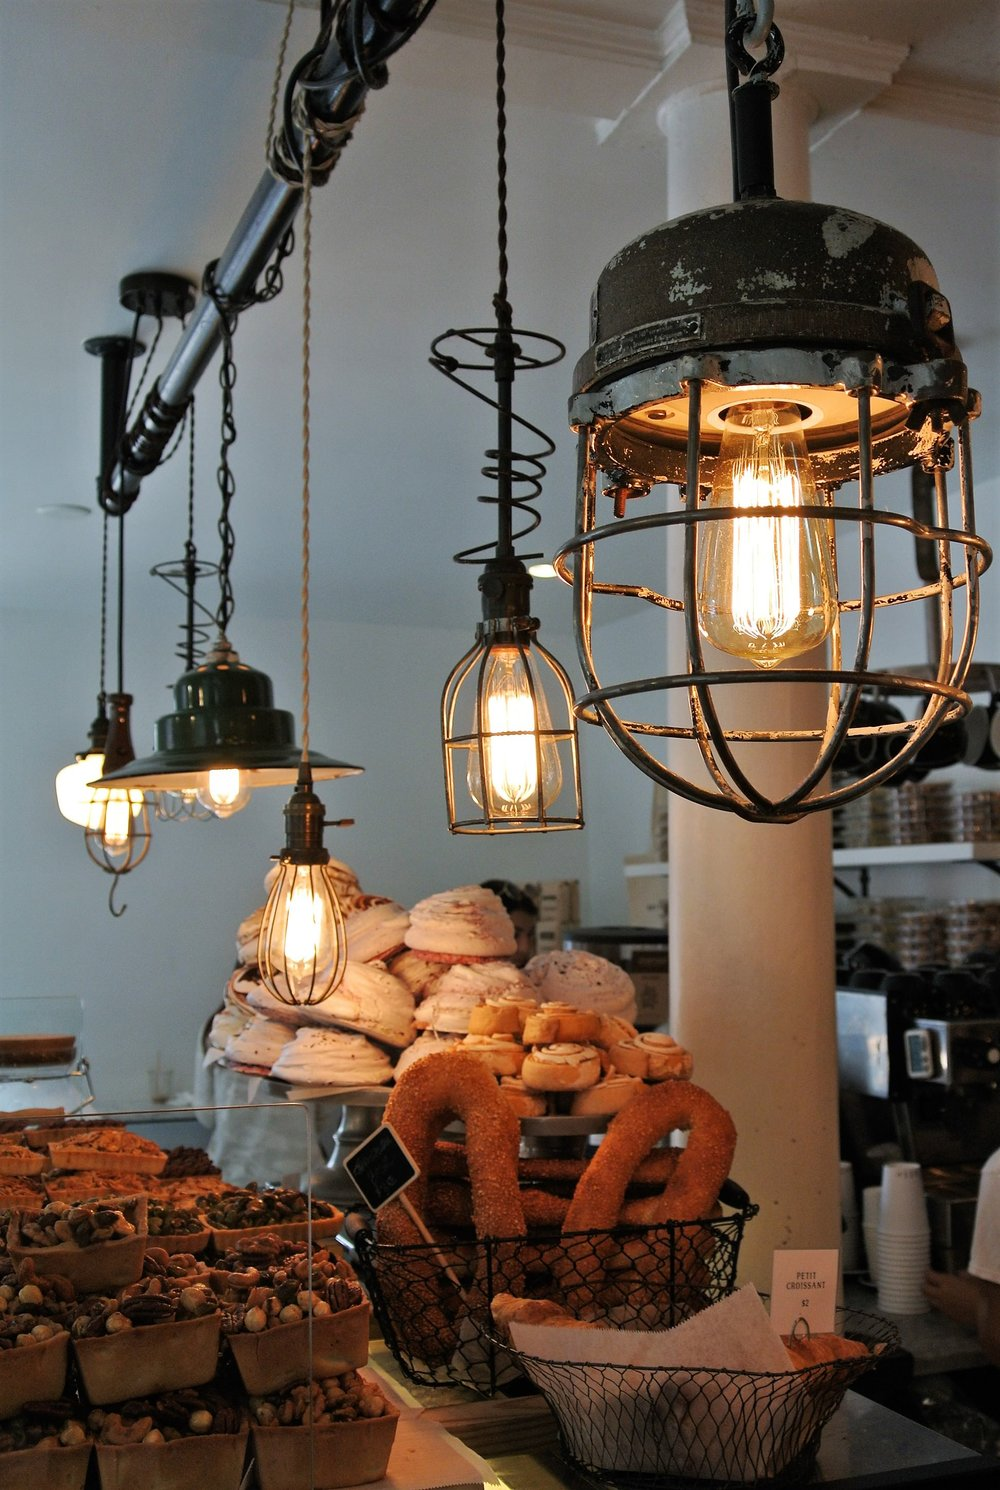 Lighting at Tatte Bakery and Cafe, Charles St, Boston